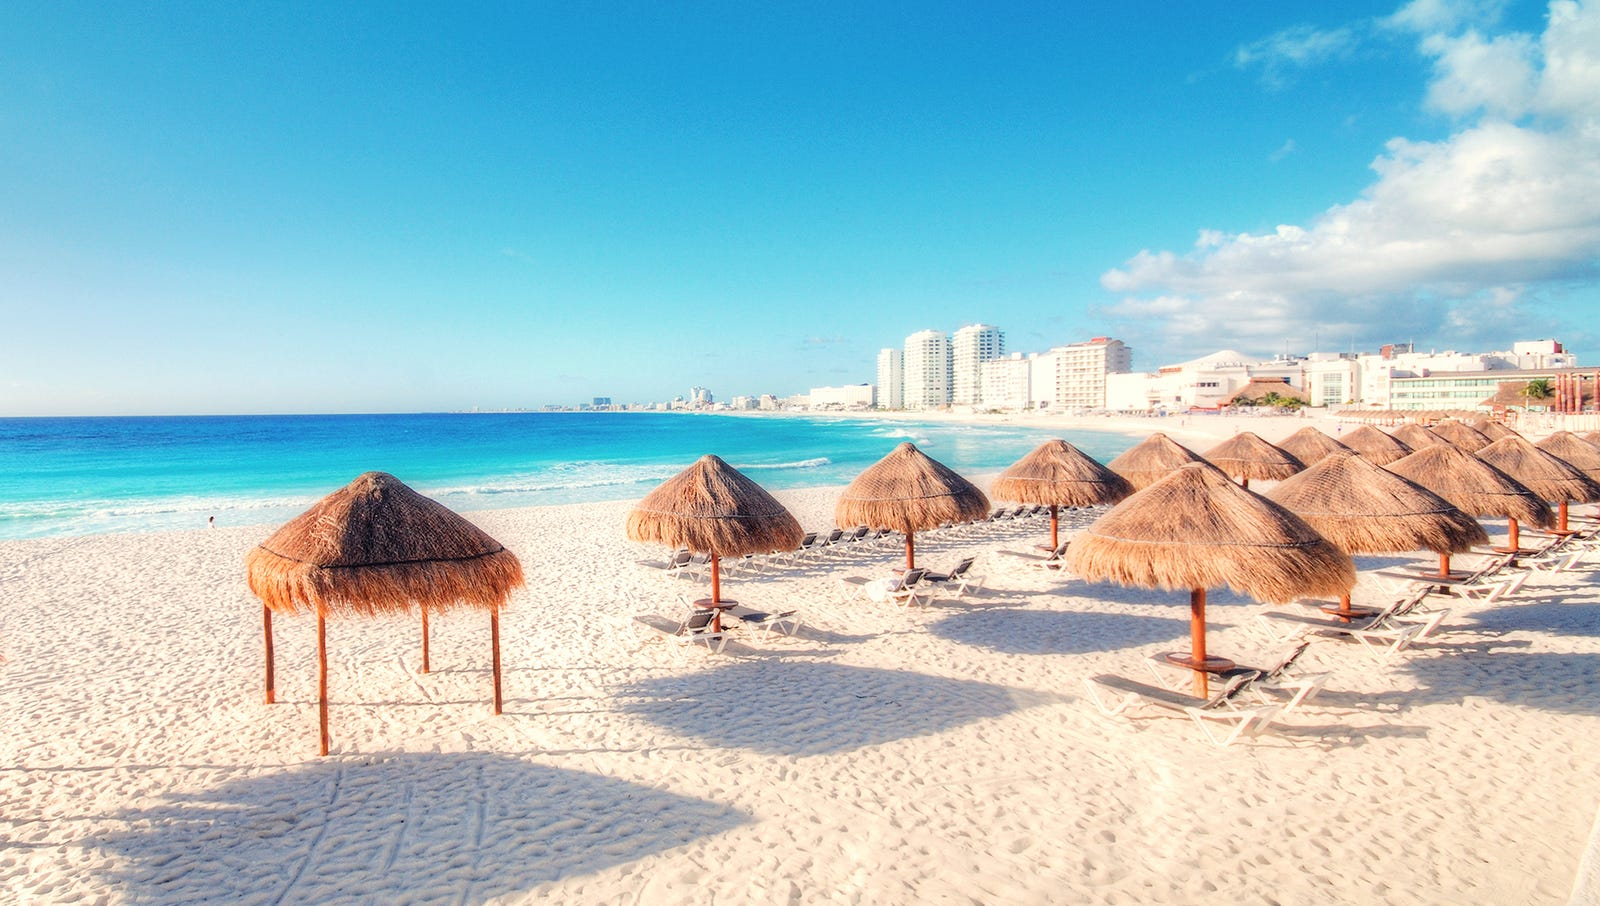 Cancun: This picturesque locale's perfect climate and sandy beaches have been attracting the worst white people in the world since the 16th century.